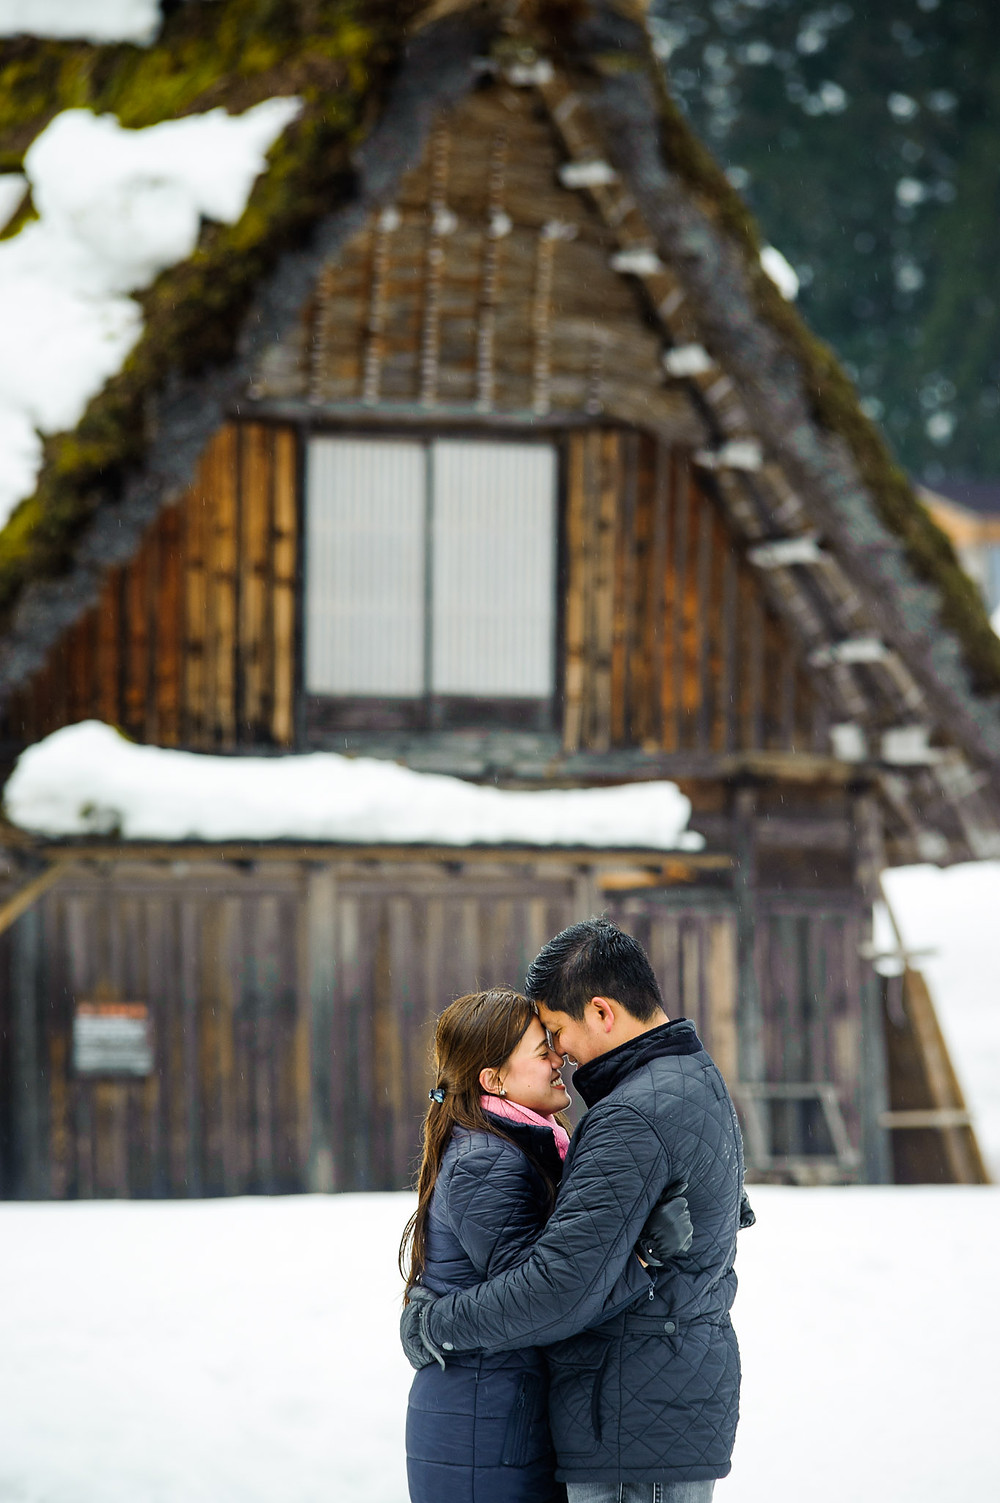 Vertical shot of CJ and Khristel embracing in front of a grass roof home